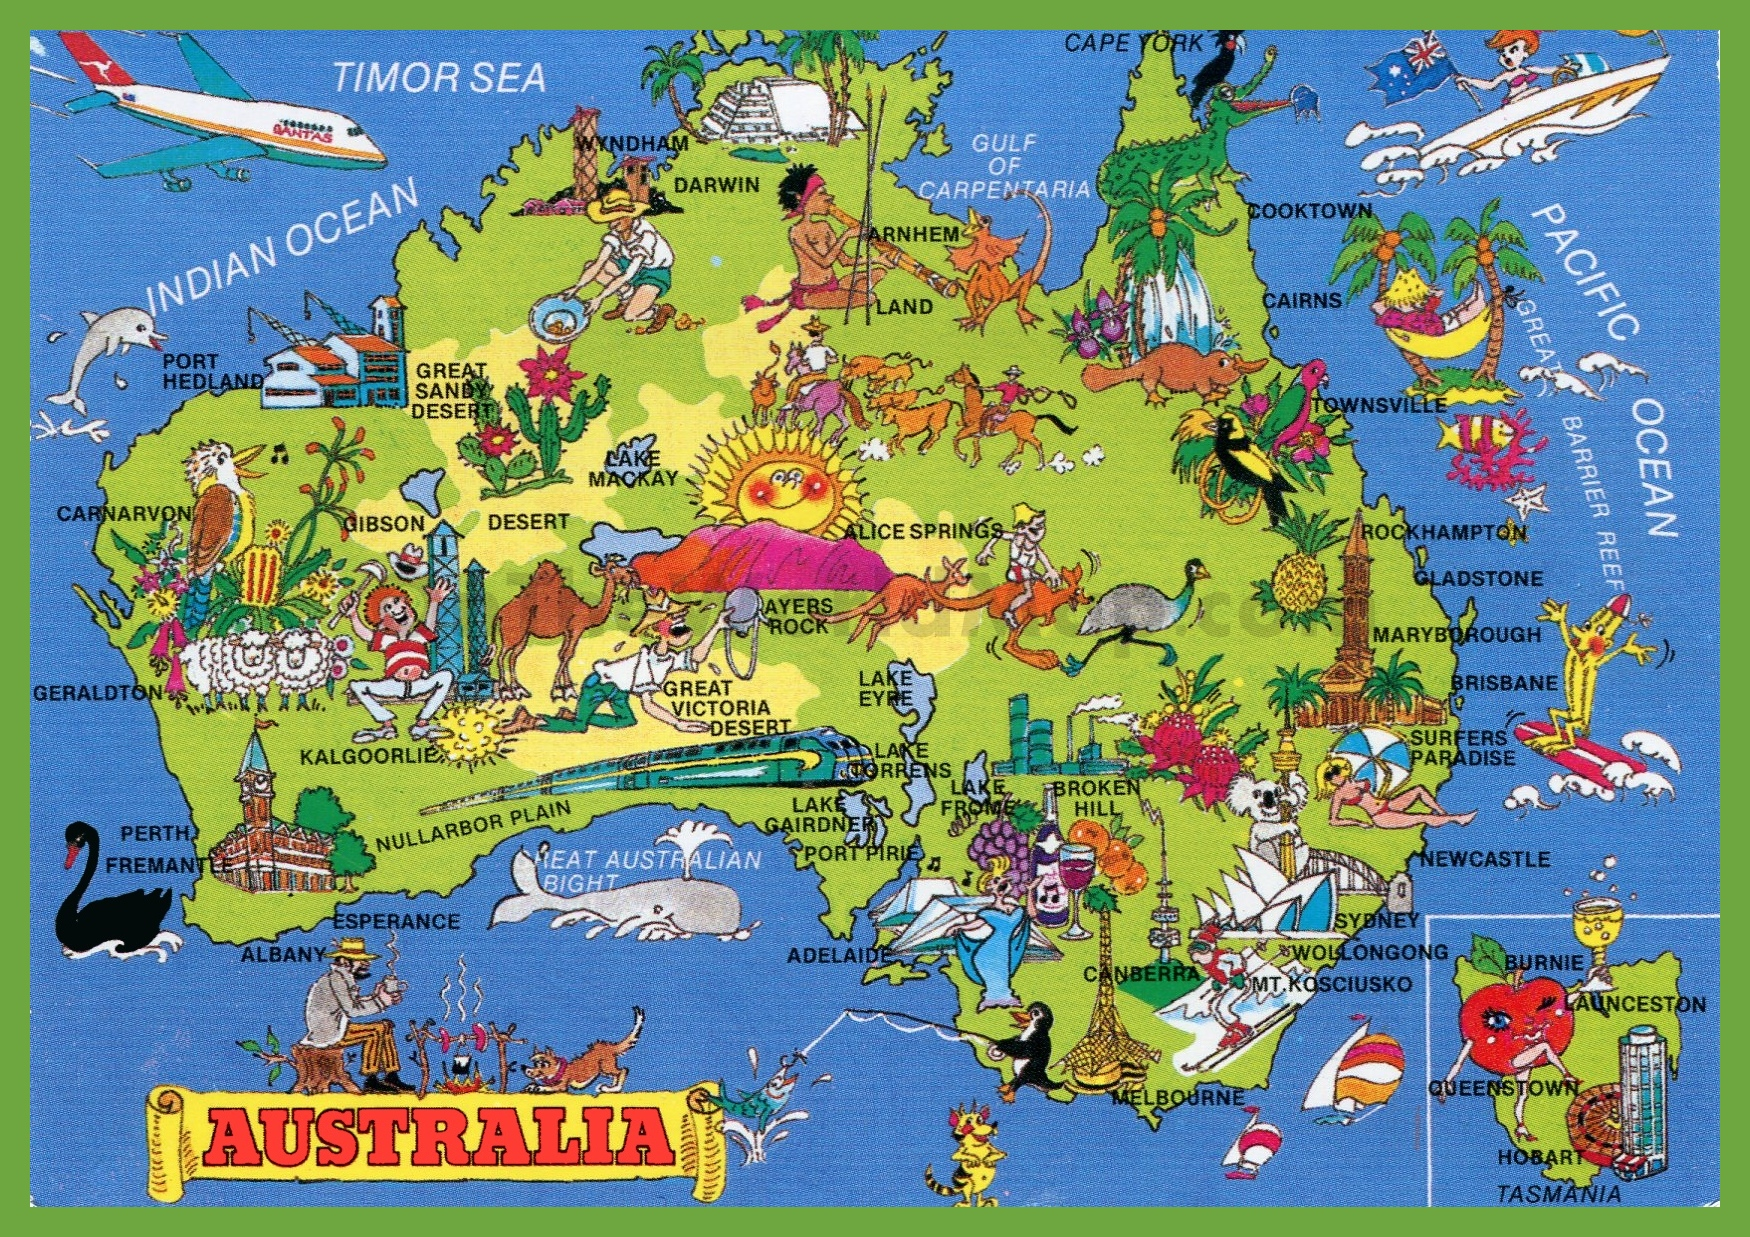 An introduction to the touristic attractions of australia